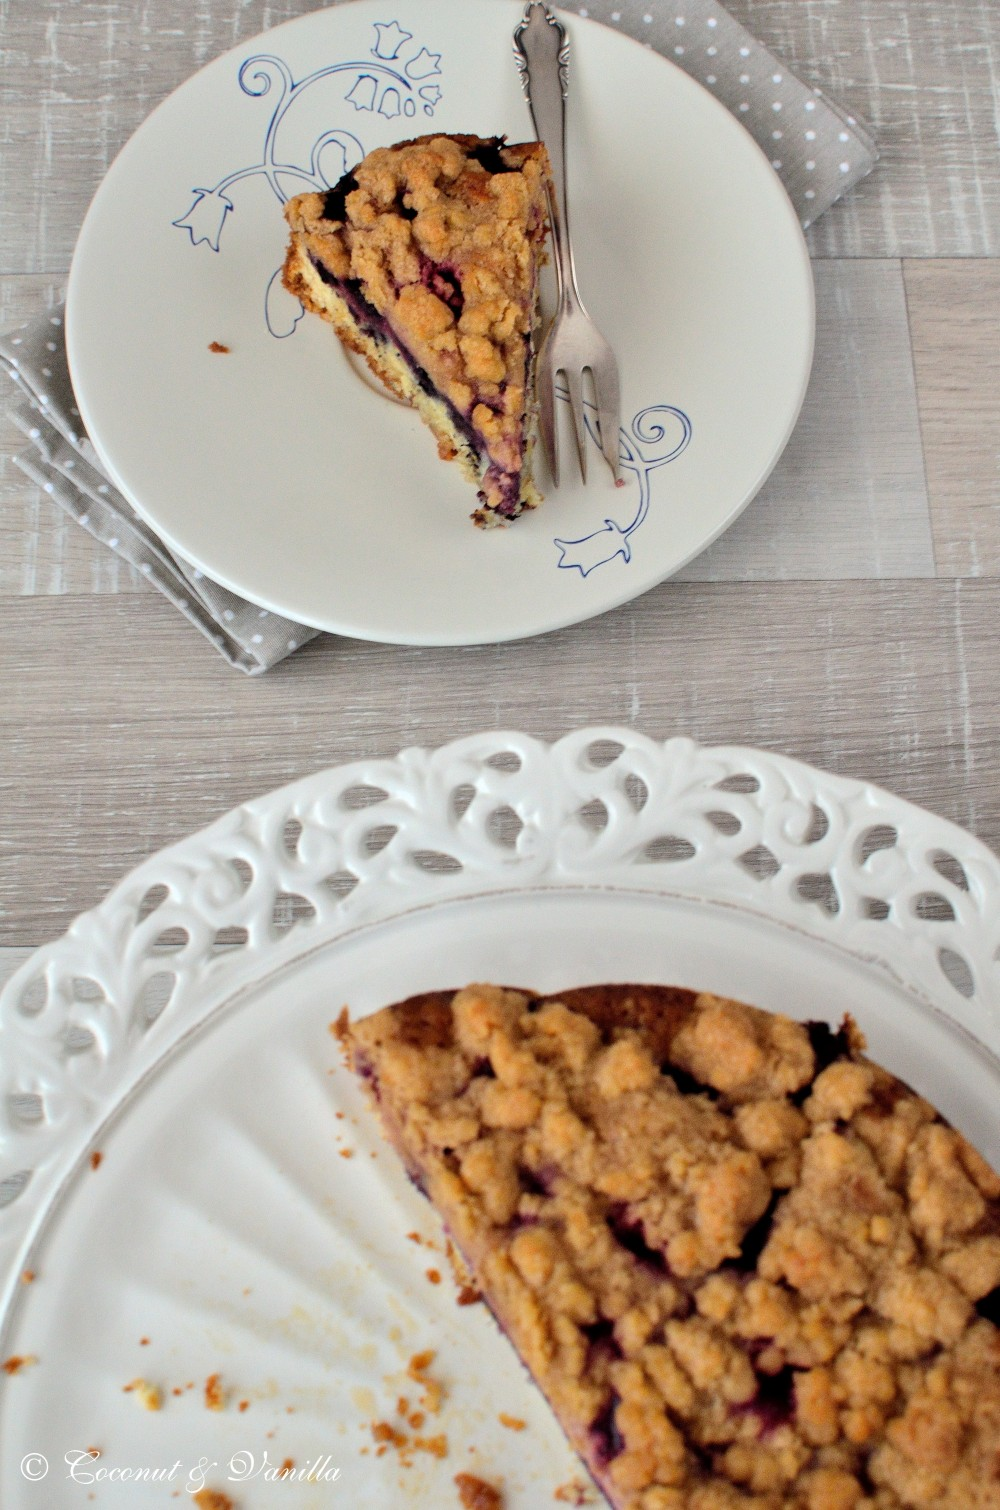 Blackberry Cake with Cinnamon Streusel